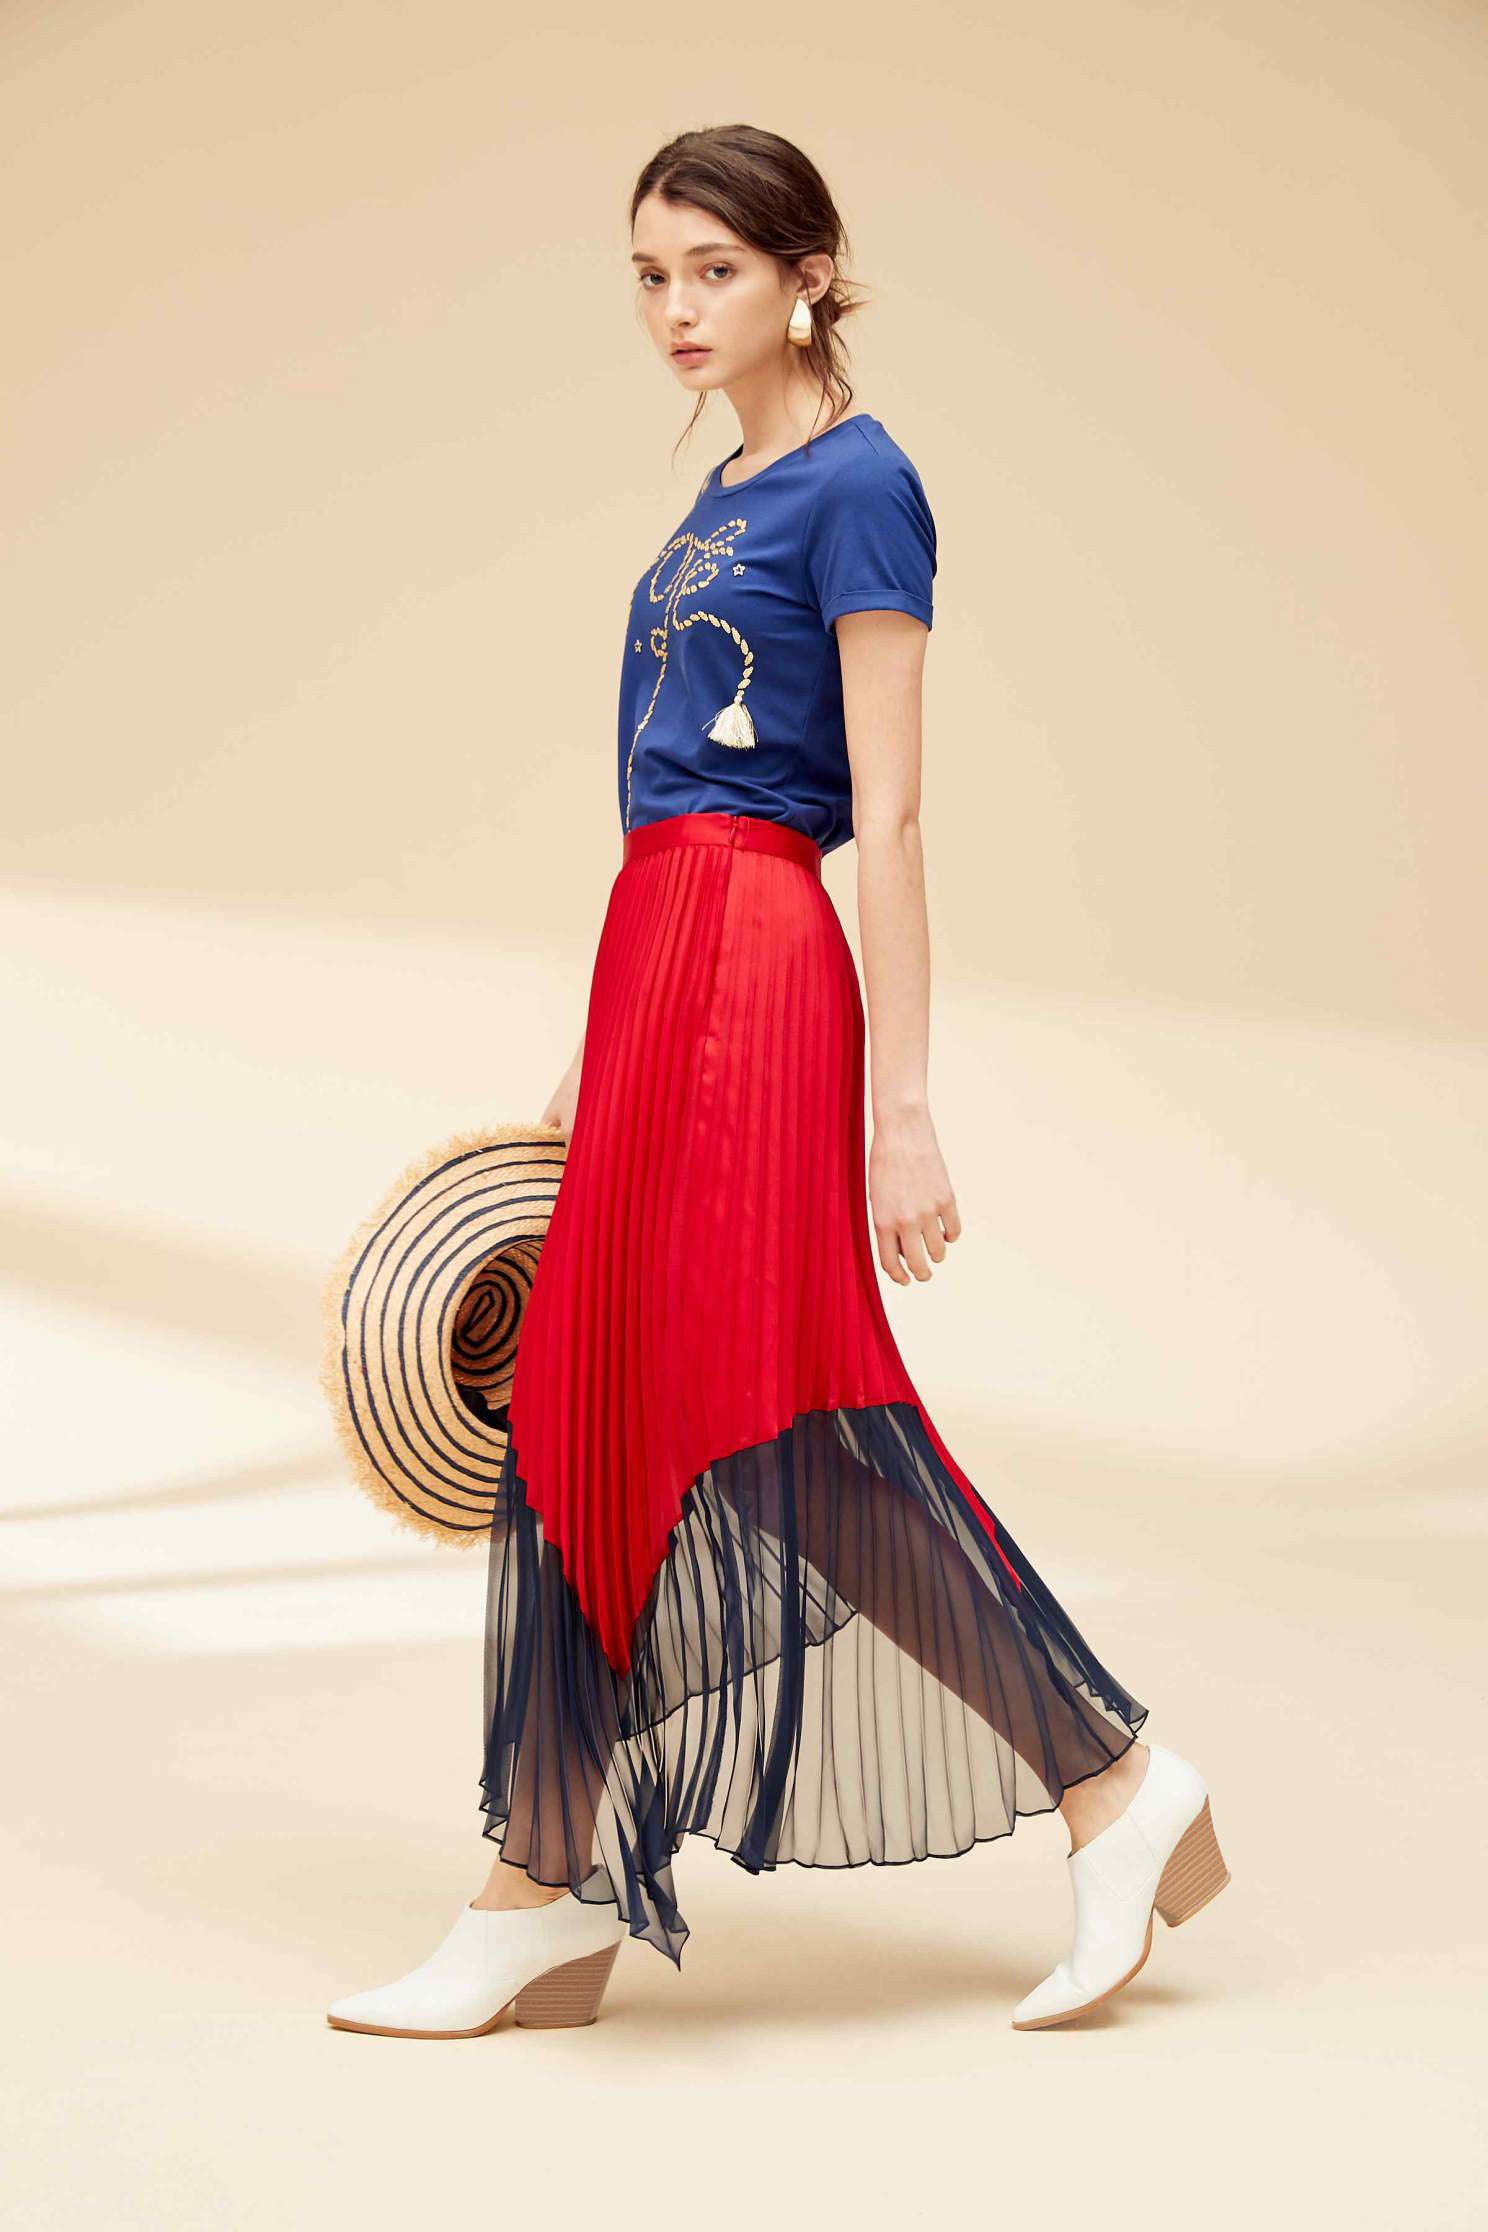 Colorblock fashion dress,Water Signs,百折,Pleated Skirt,Maxi Pleated Skirt,Long Skirt,Chiffon,Chiffon Skirt,Chiffon Long skirts